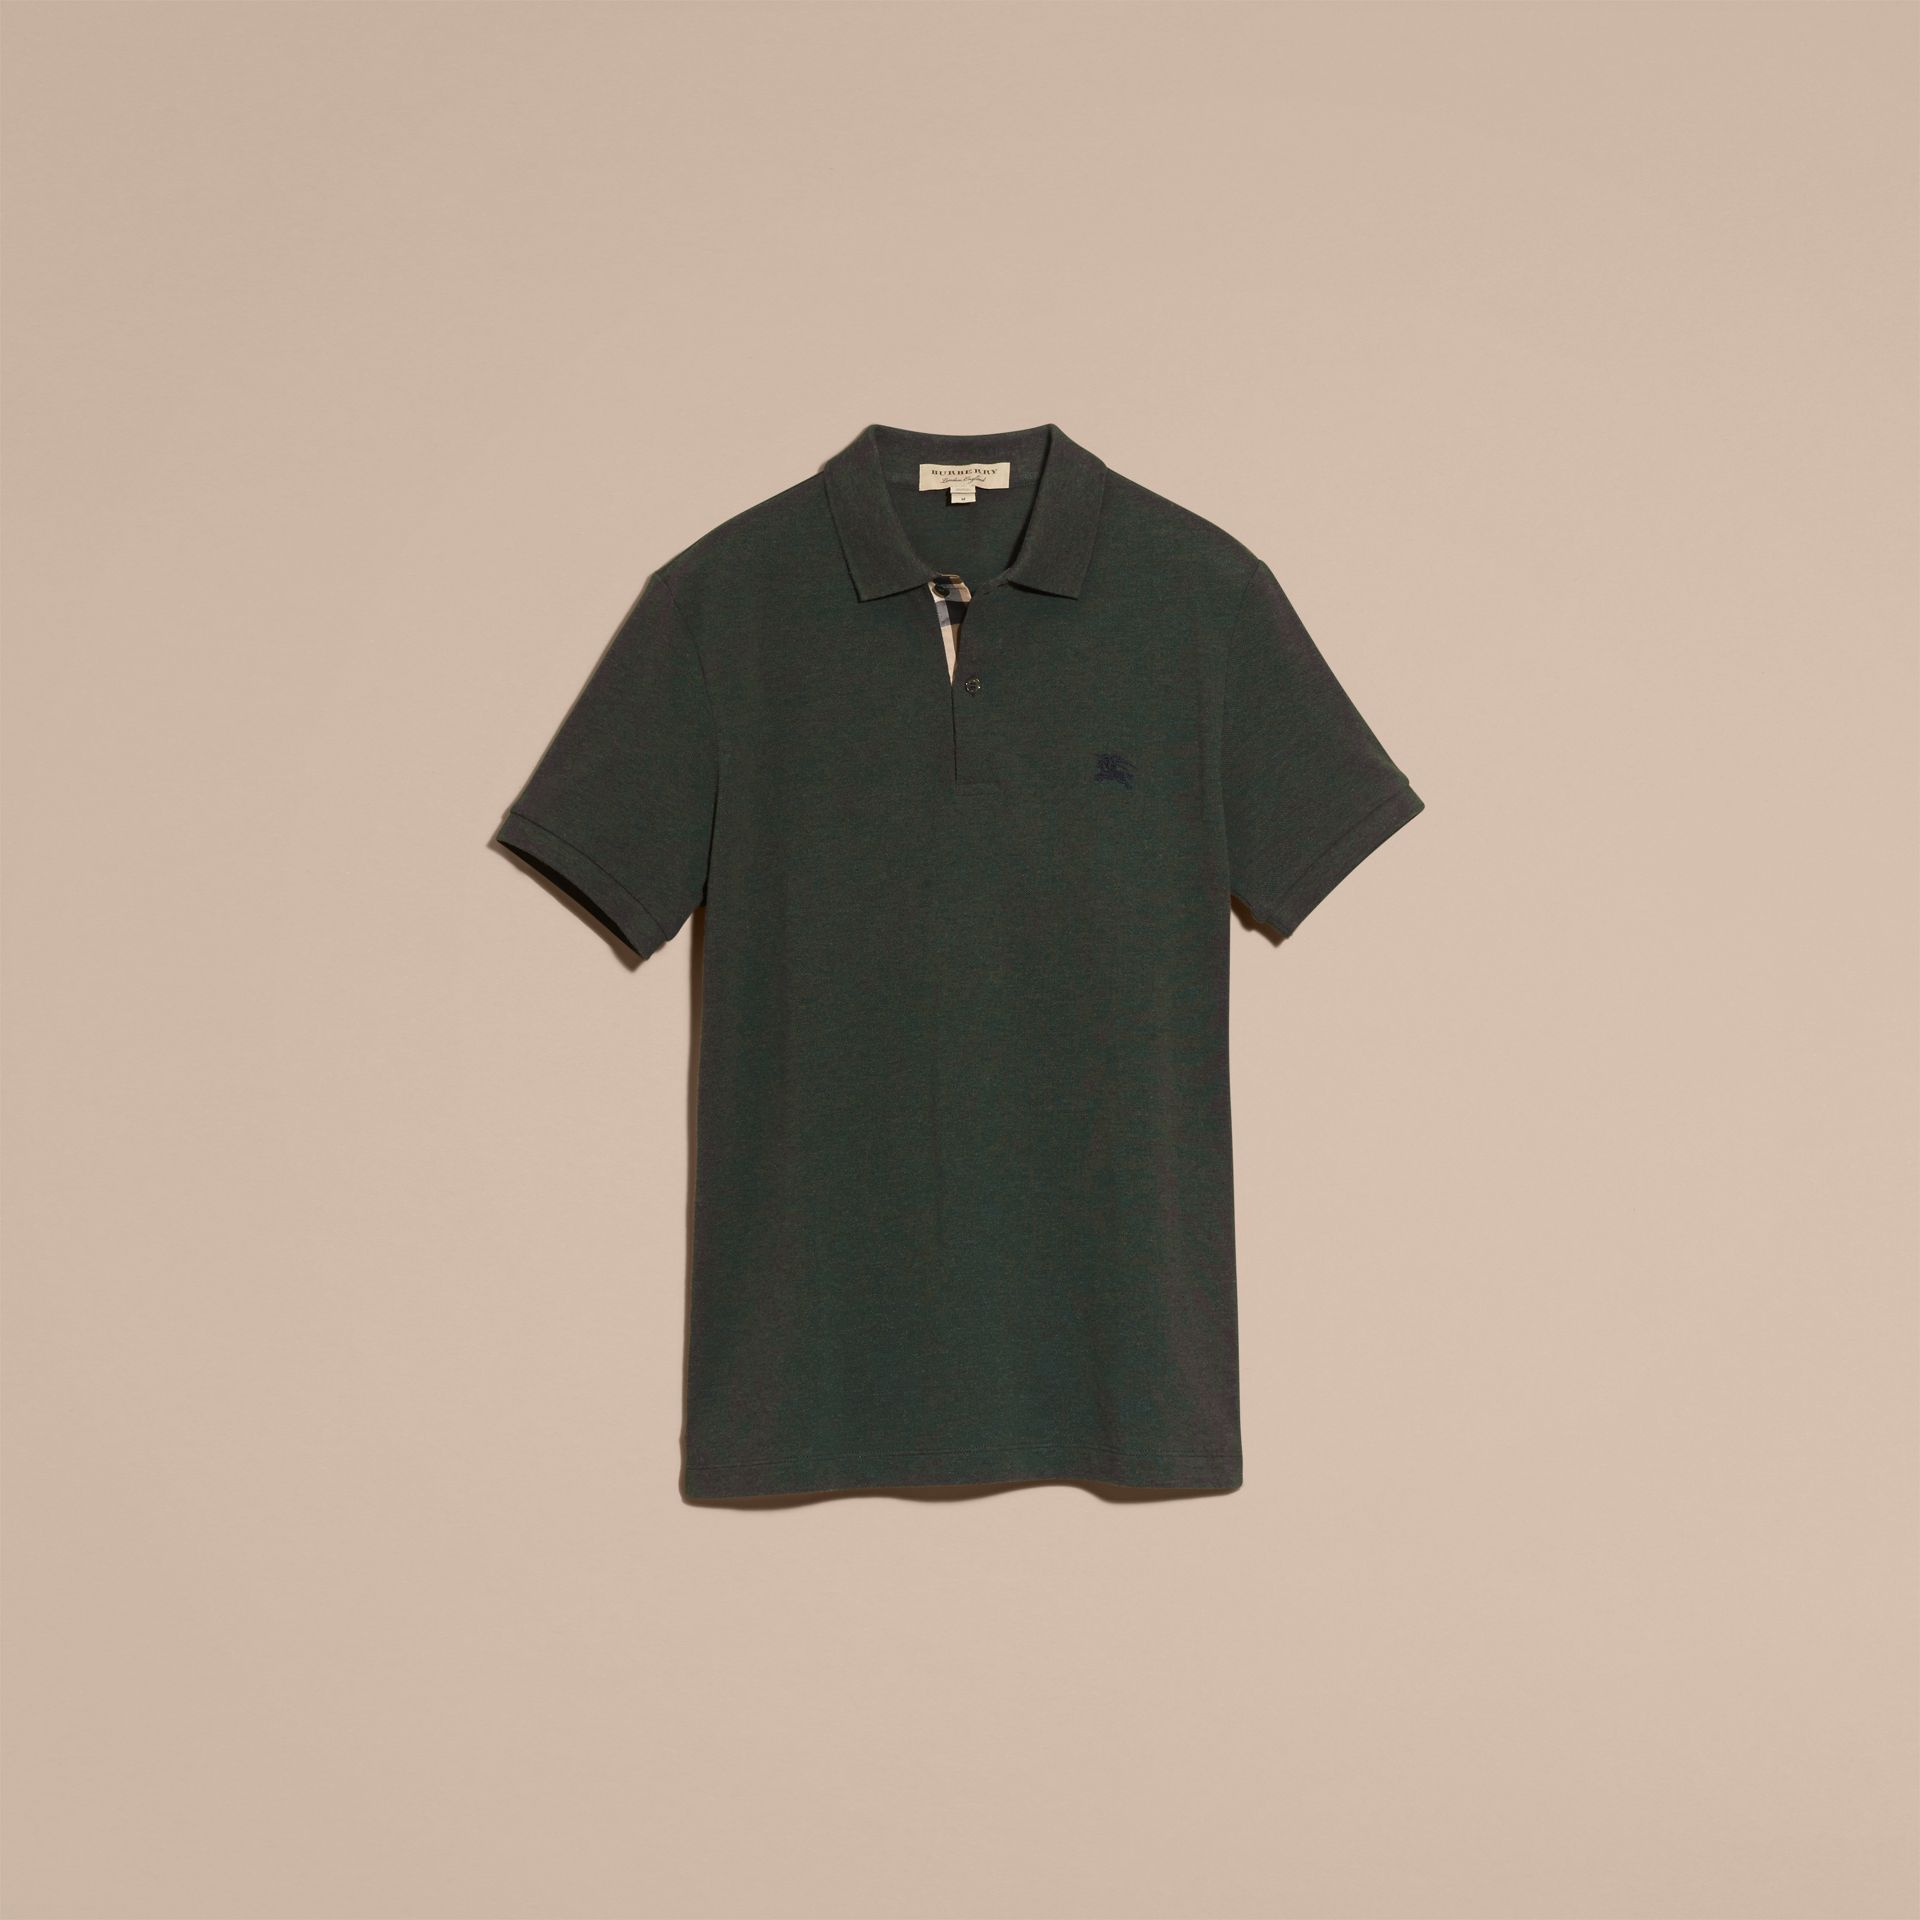 Racing green melange Check Placket Cotton Piqué Polo Shirt Racing Green Melange - gallery image 4